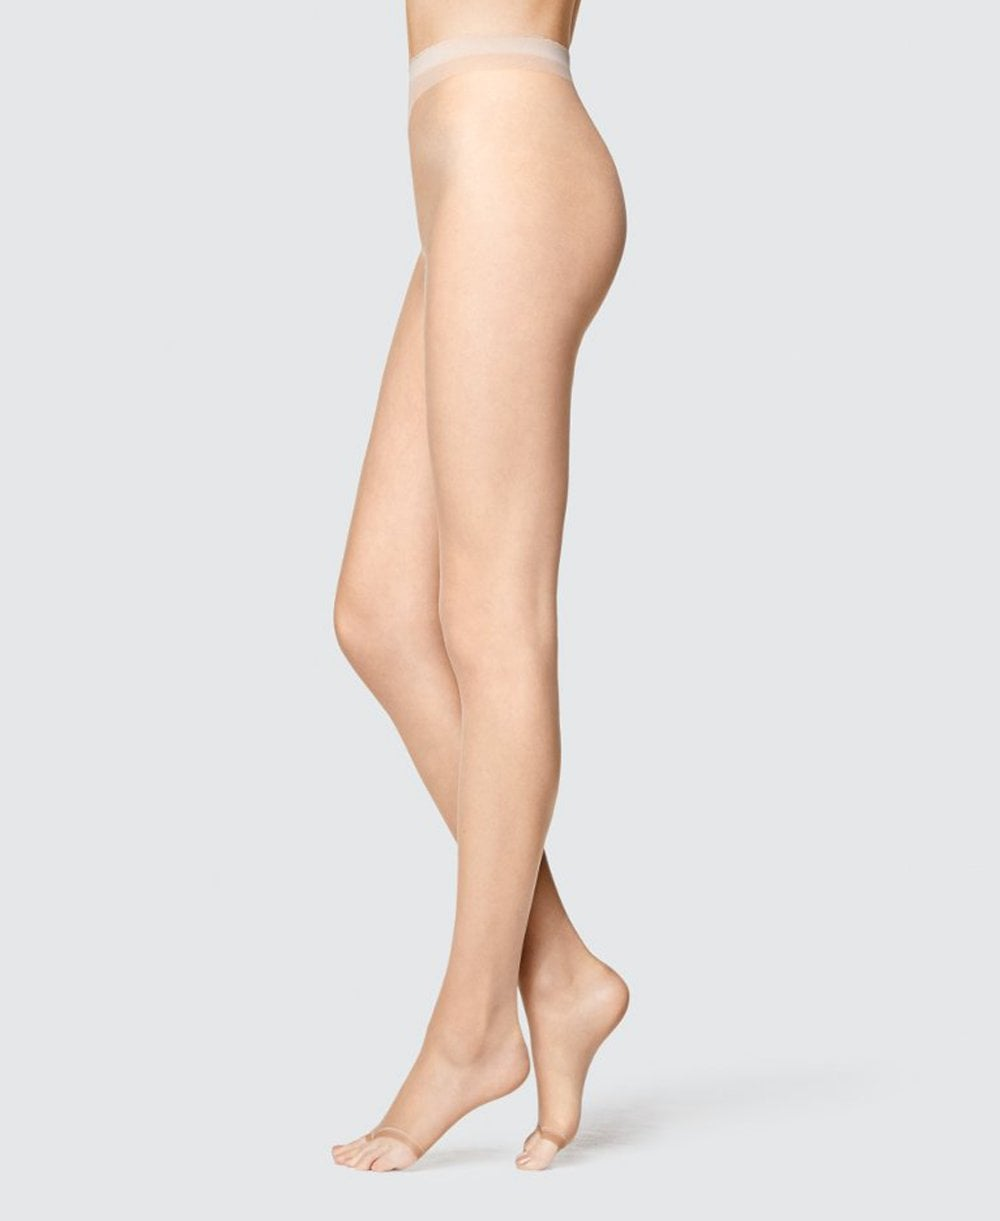 c73b5d4627ad7 Fogal All Nude 10 Denier Toeless Tights - Tights from luxury-legs.com UK